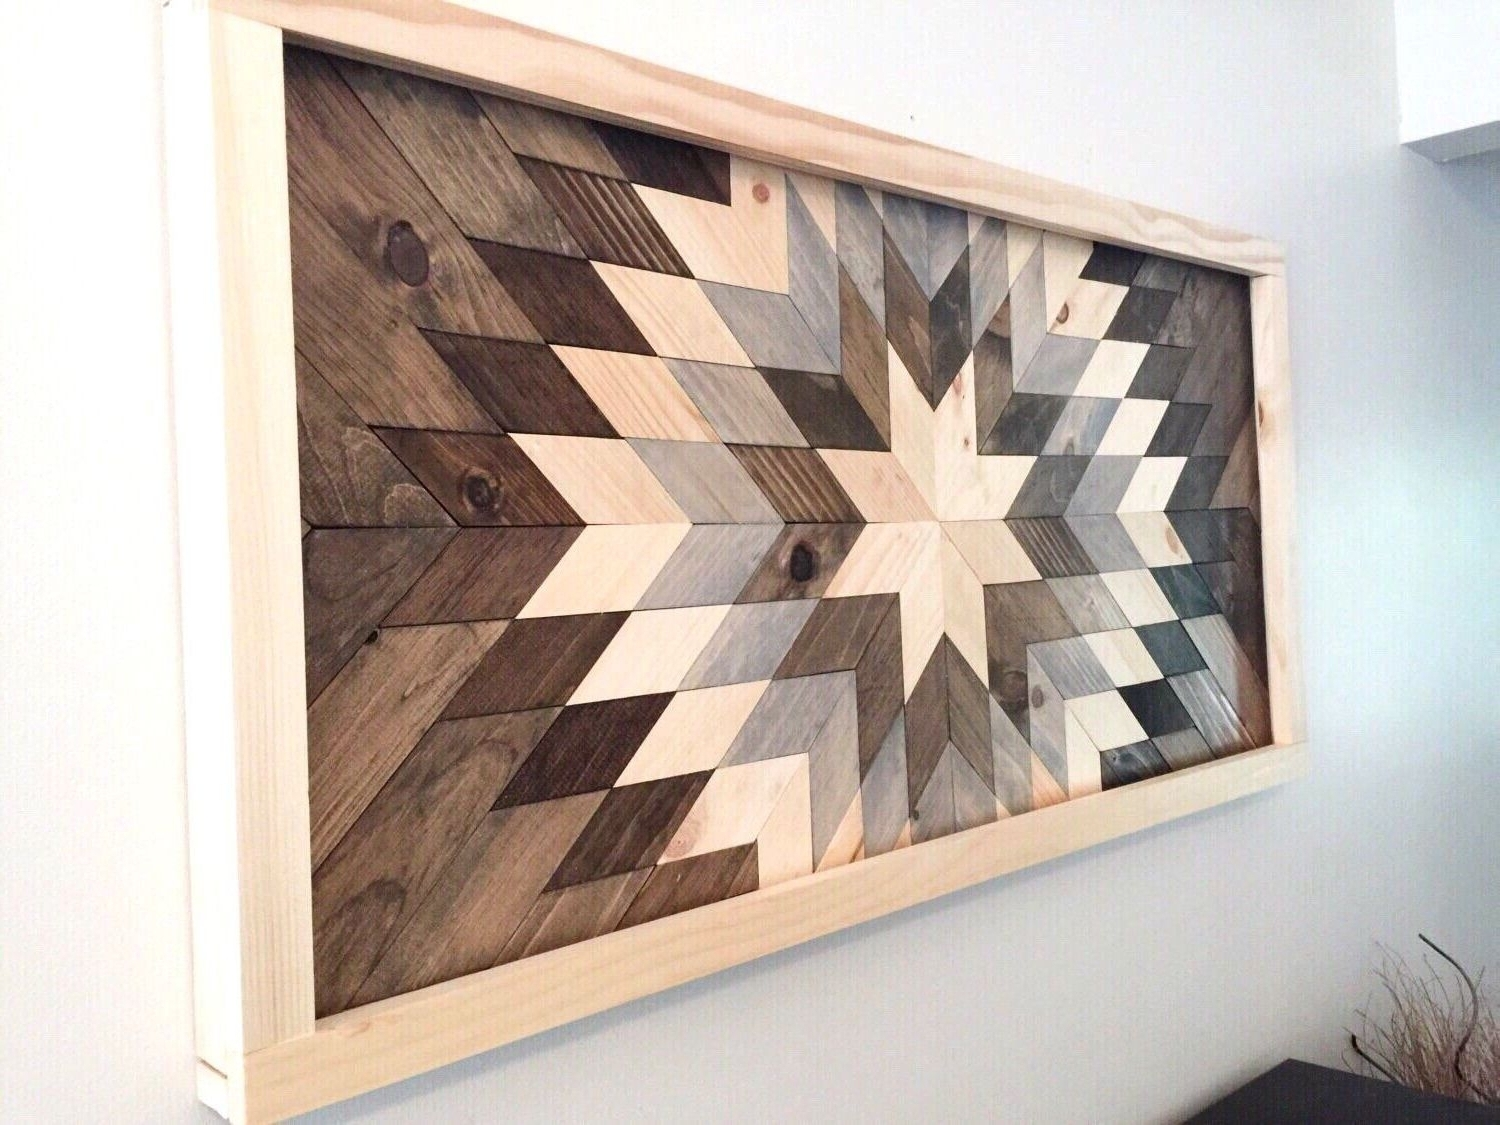 2018 Wood Wall Art Diy With Wood Decor Wall Art Wood Wall Art Diy Excellent Wooden Decor Ideas (View 1 of 15)